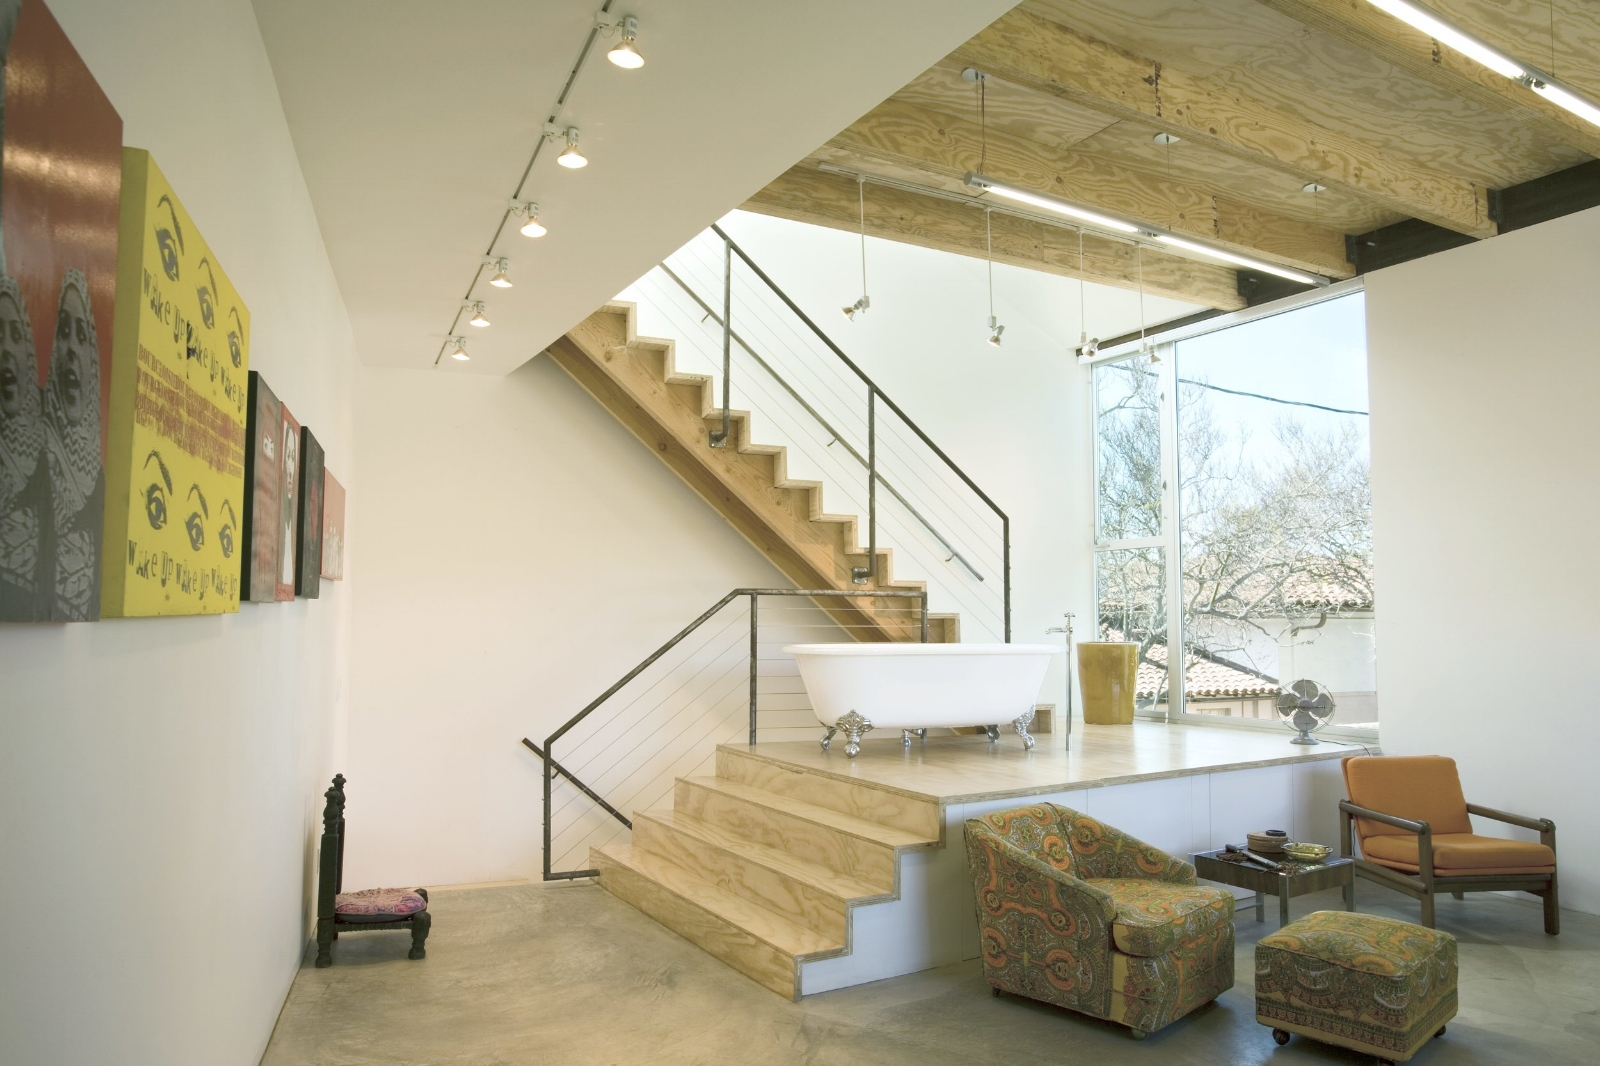 Interior view of the studio showing the stair access to the roof deck.